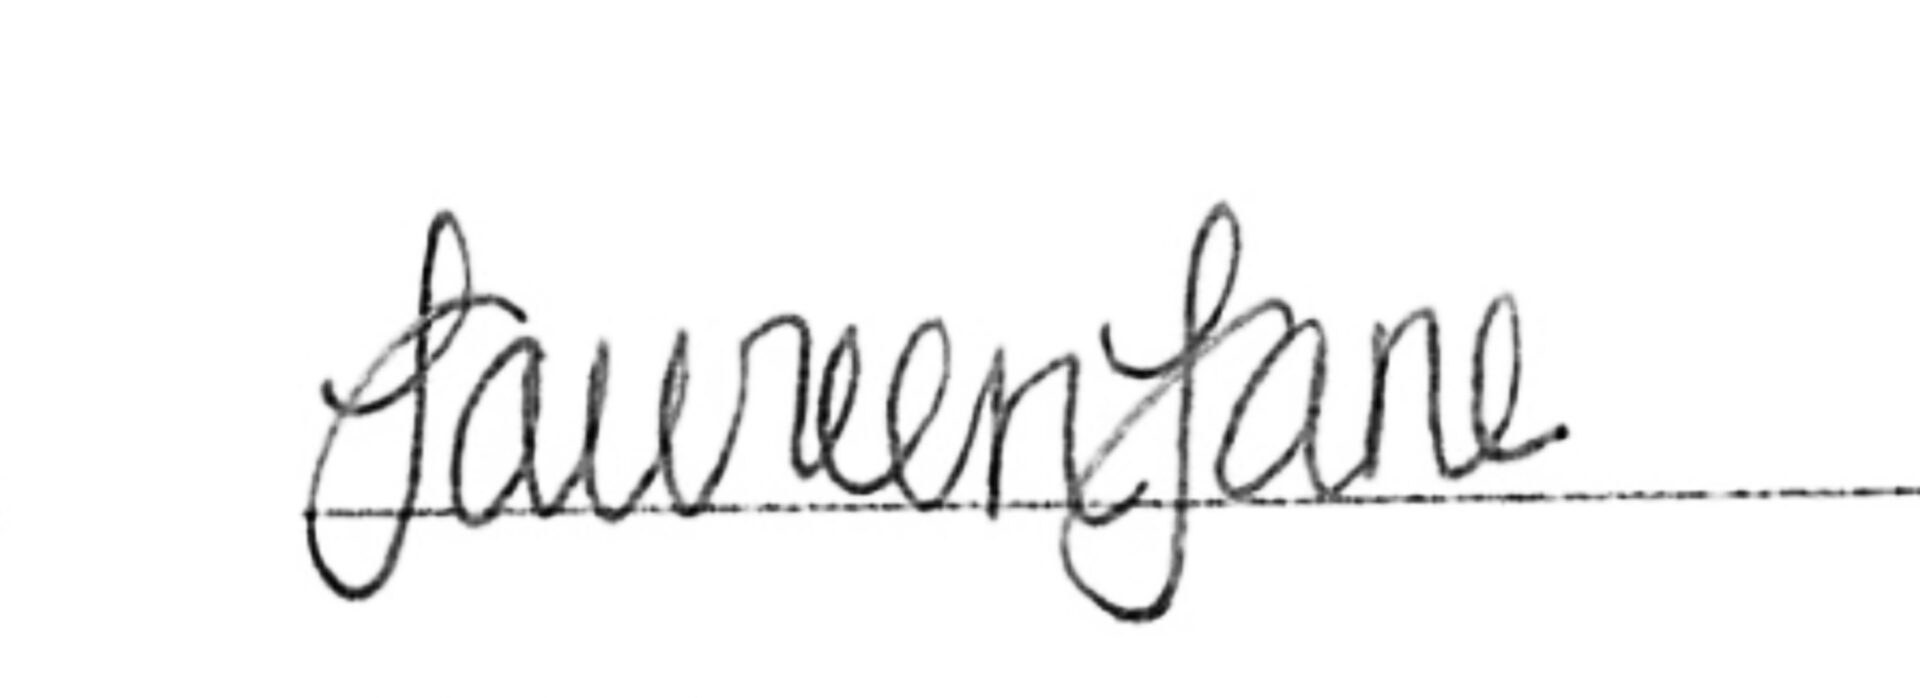 Laureen Lane Signature Graphic